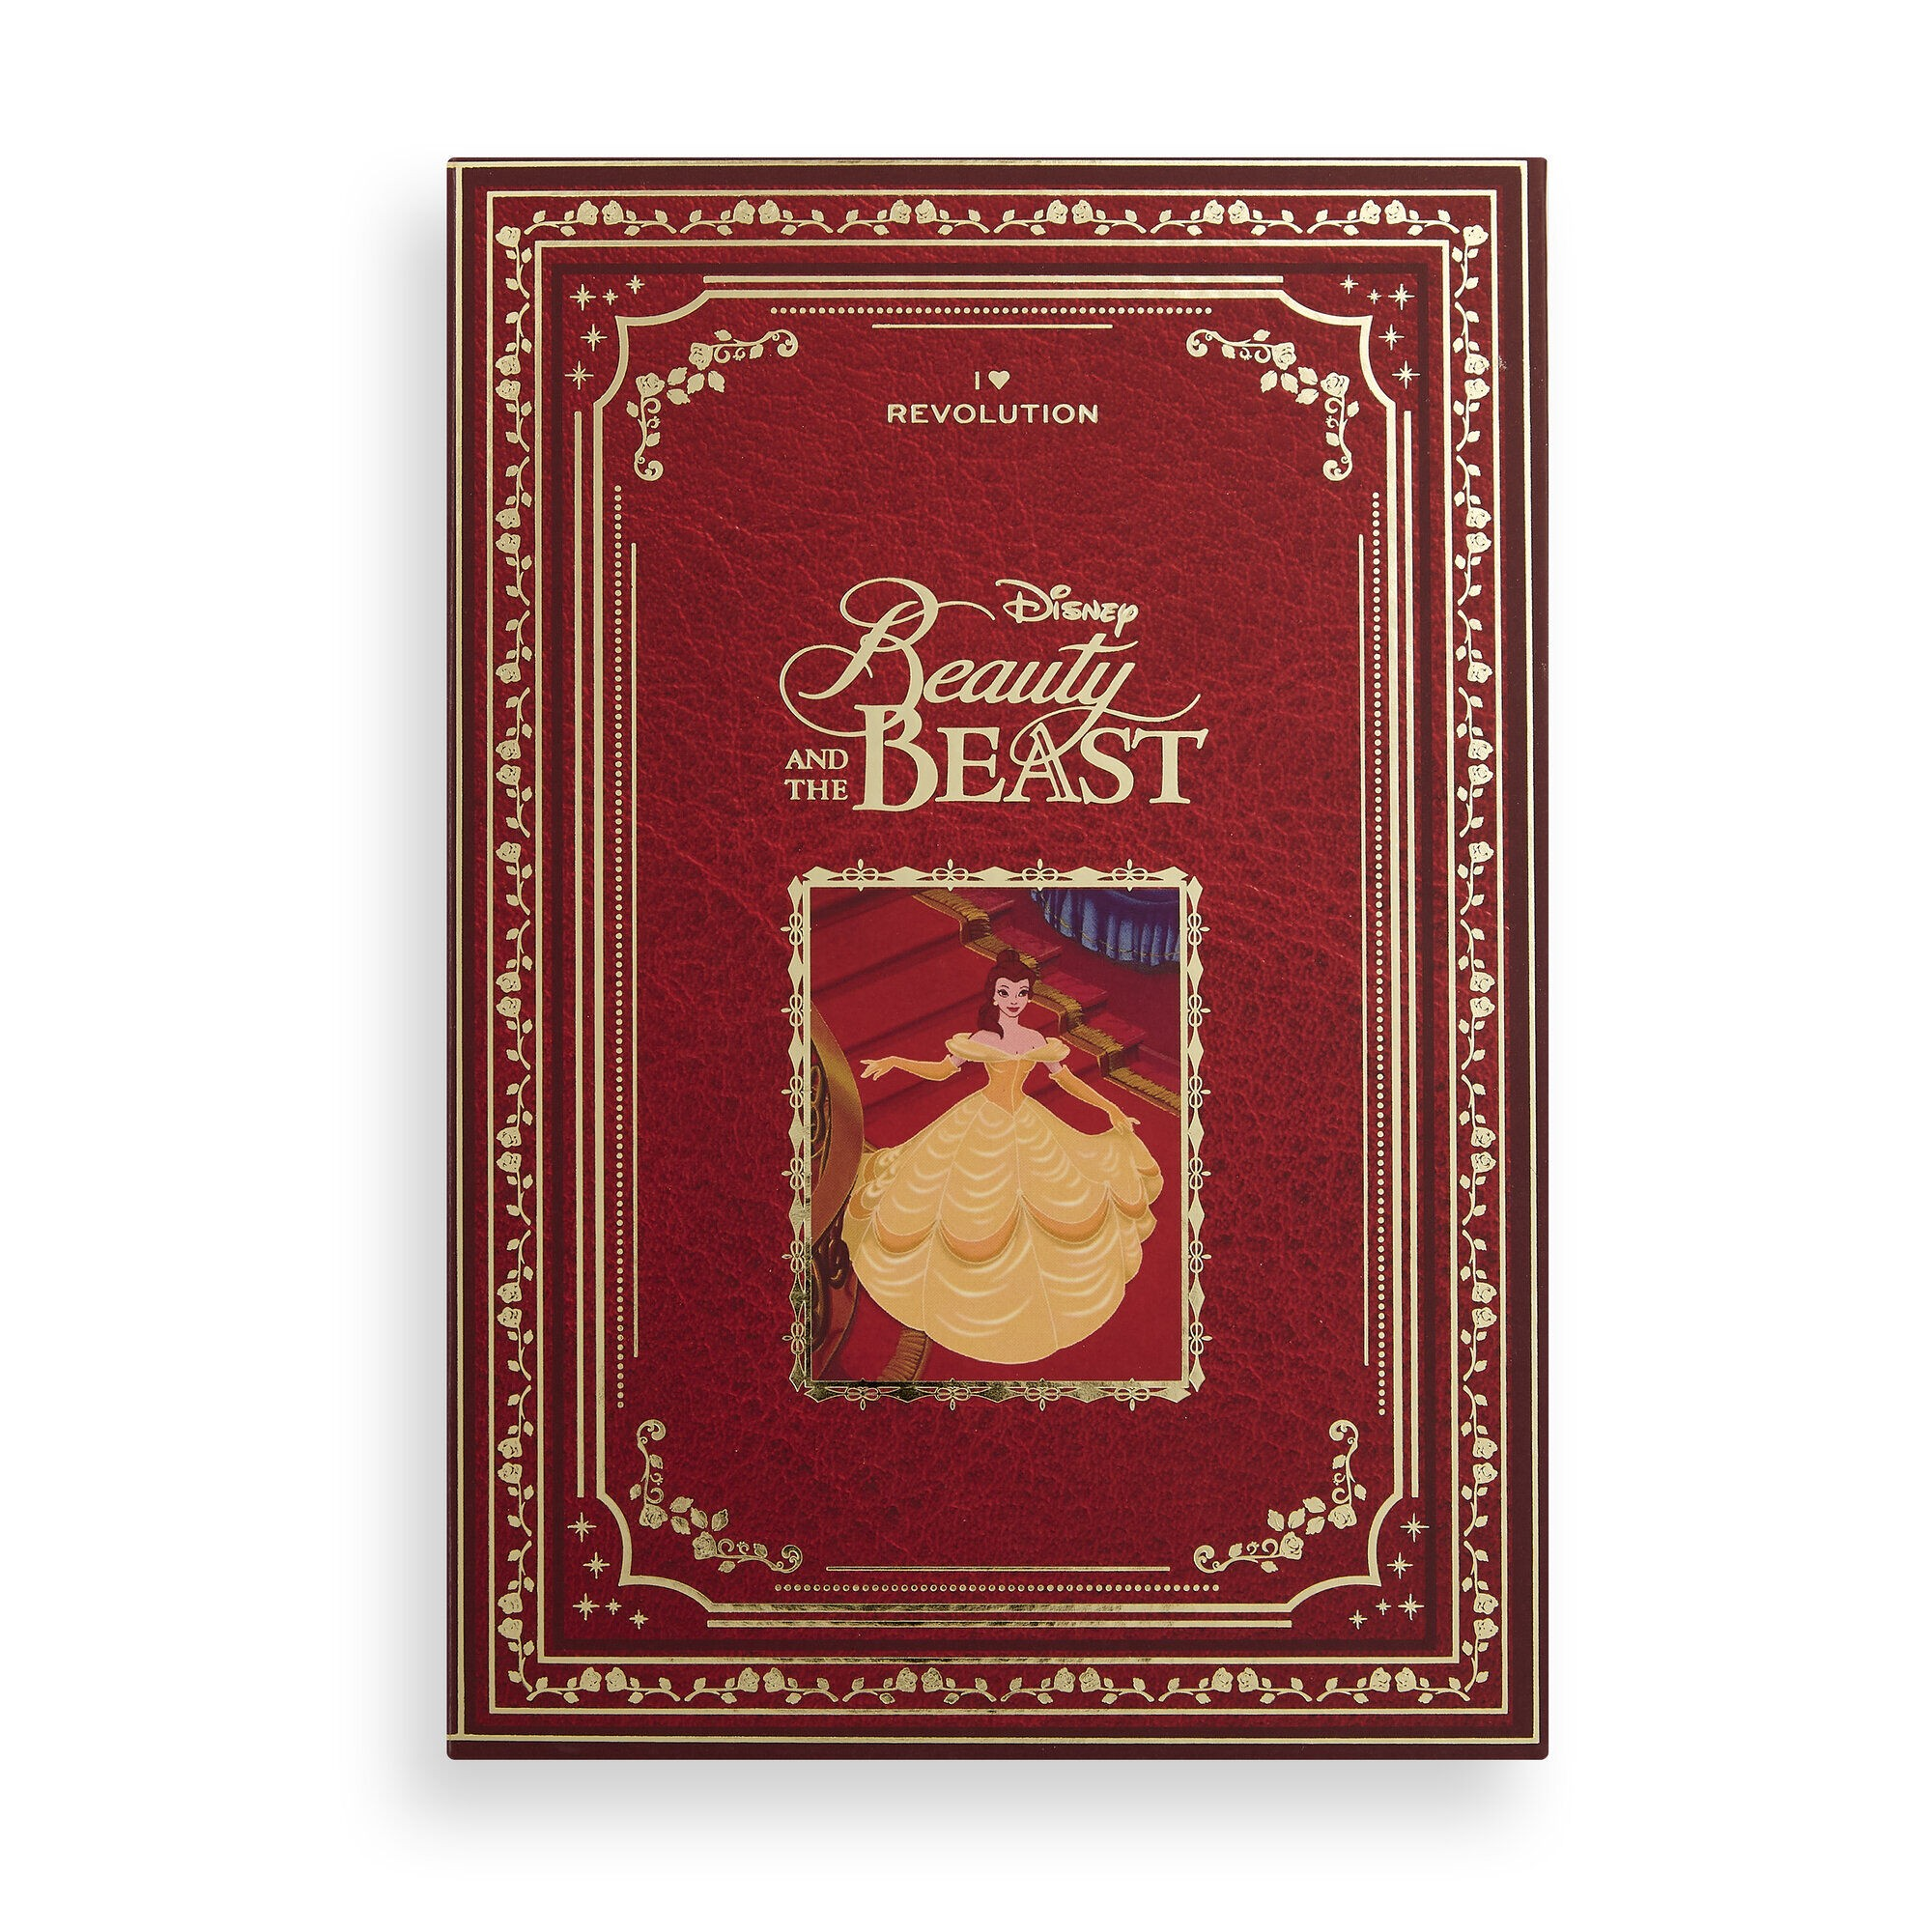 Make-Up Palette - Disney Fairytale Book Palette - Beauty And The Beast